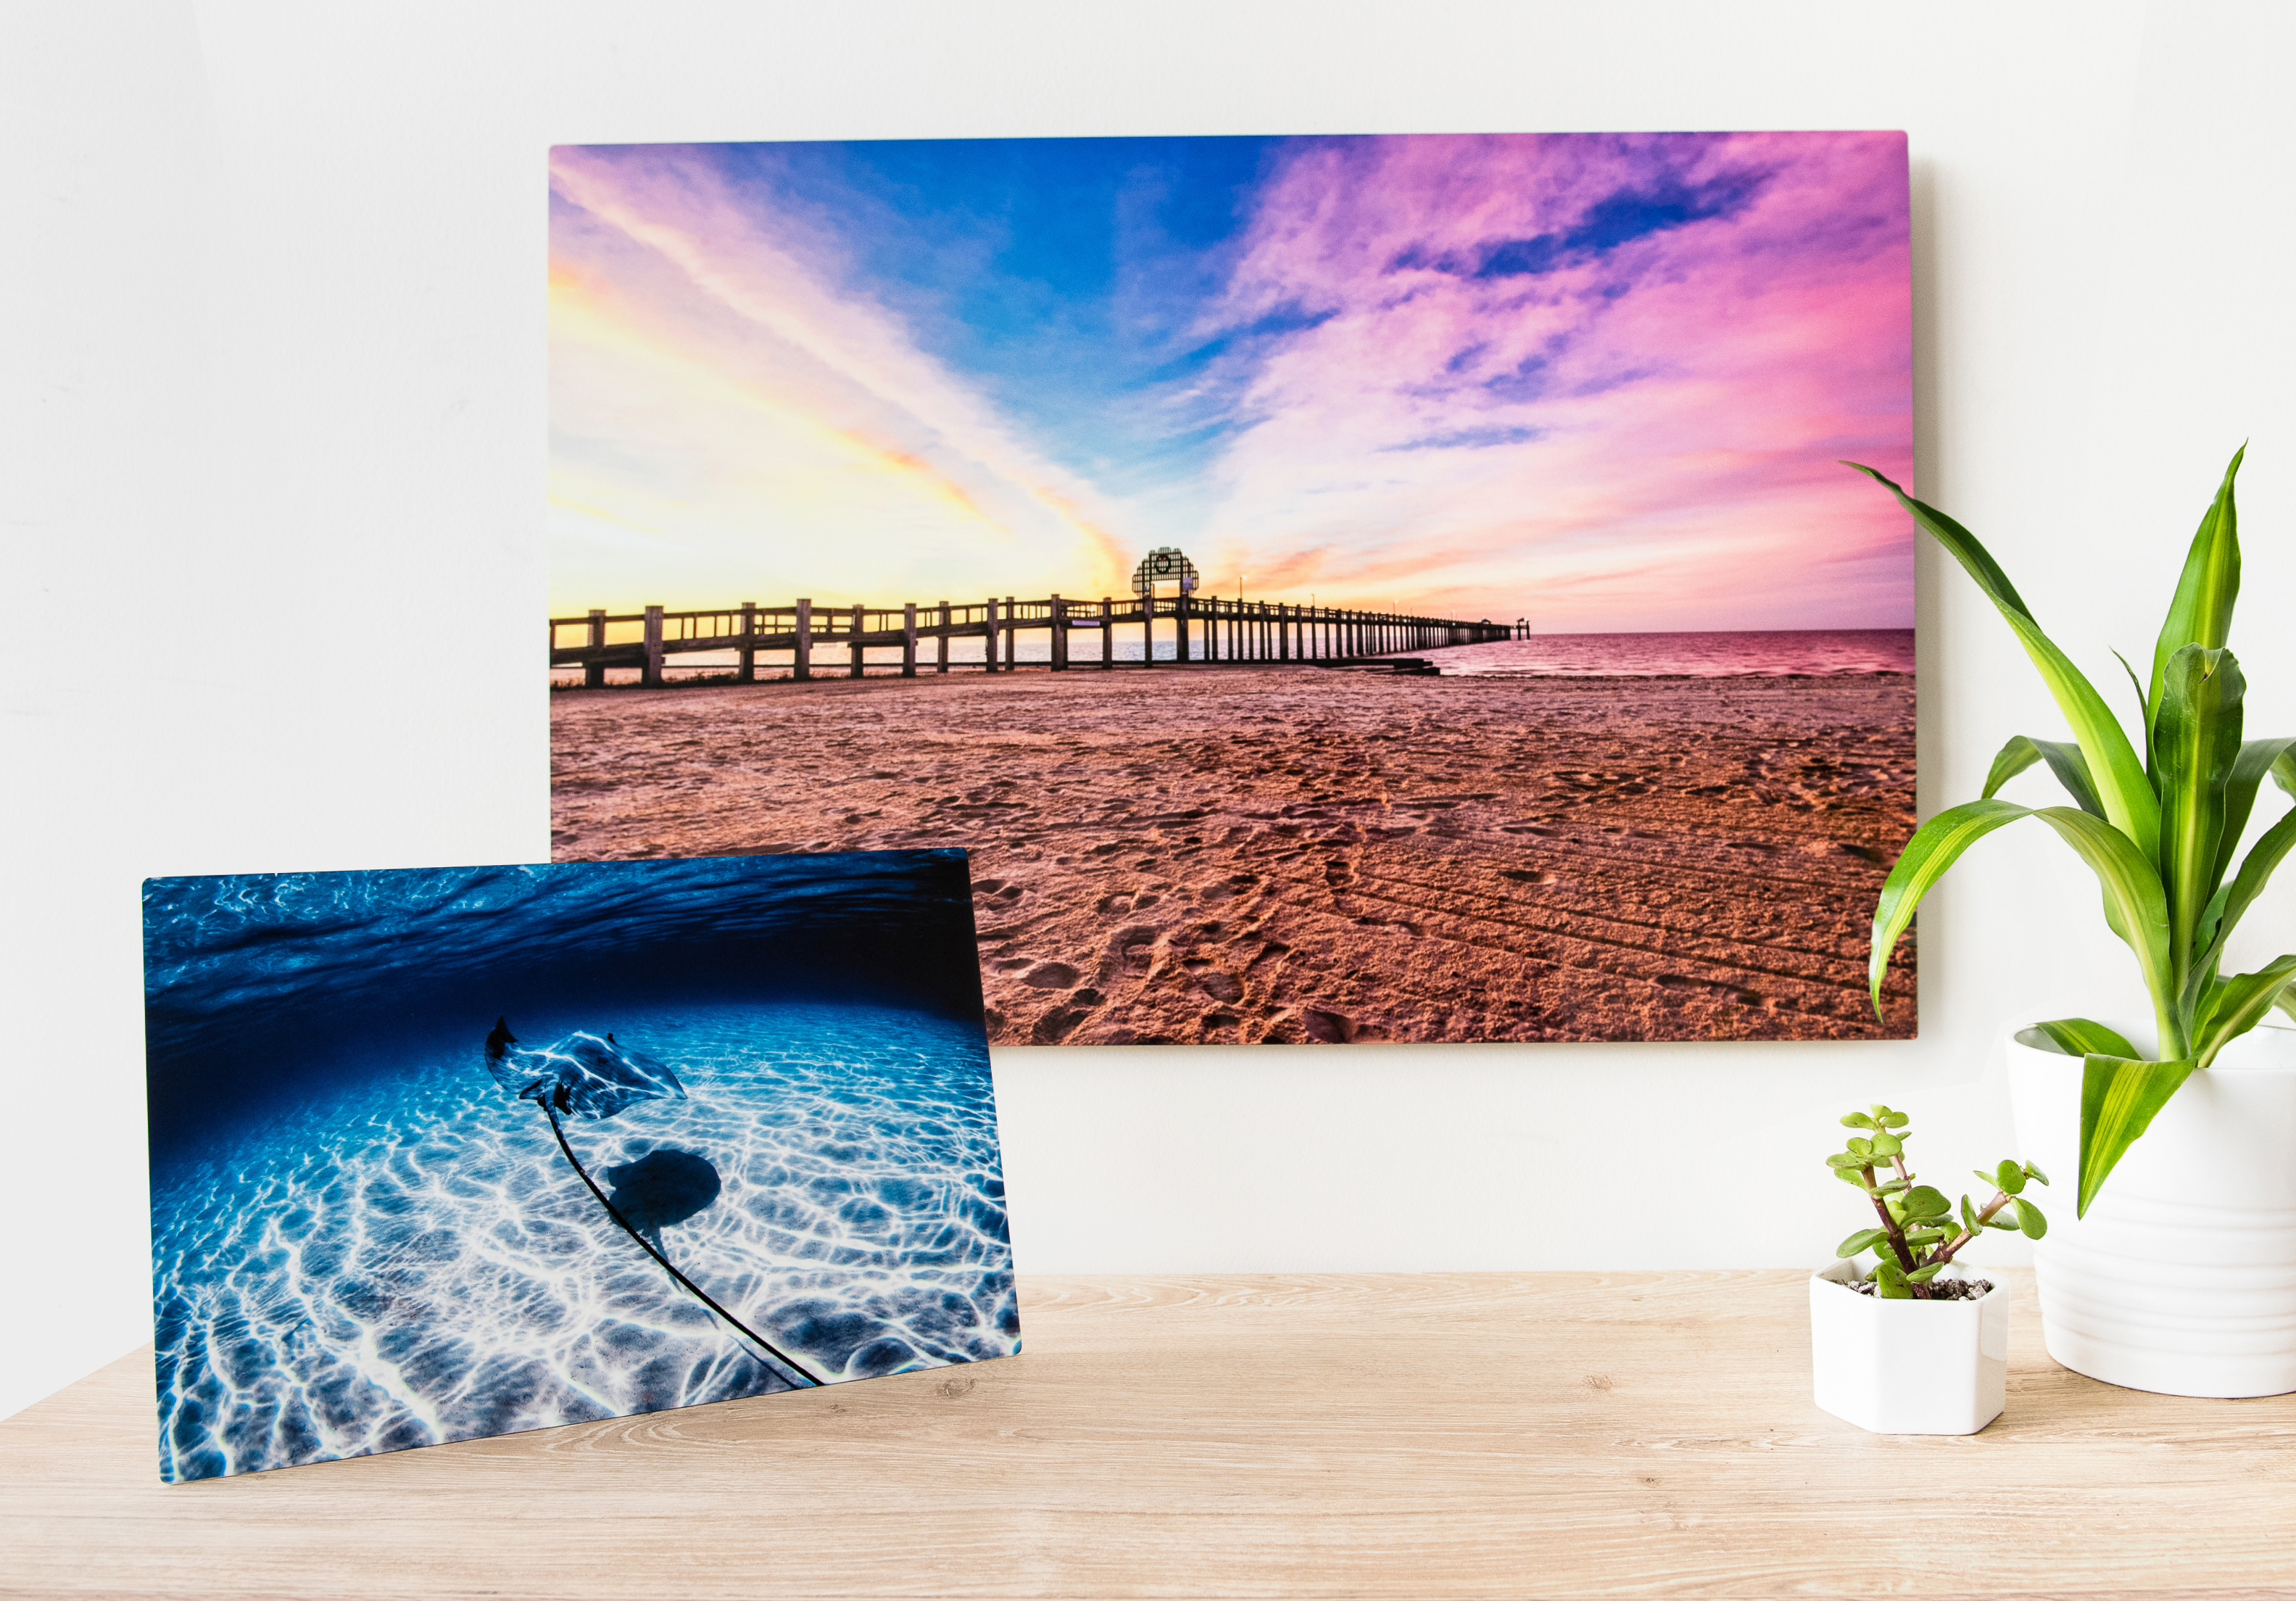 Wall decals choose an option 8x12 in 16x24 in 24x36 in - Wall Decals Choose An Option 8x12 In 16x24 In 24x36 In 27